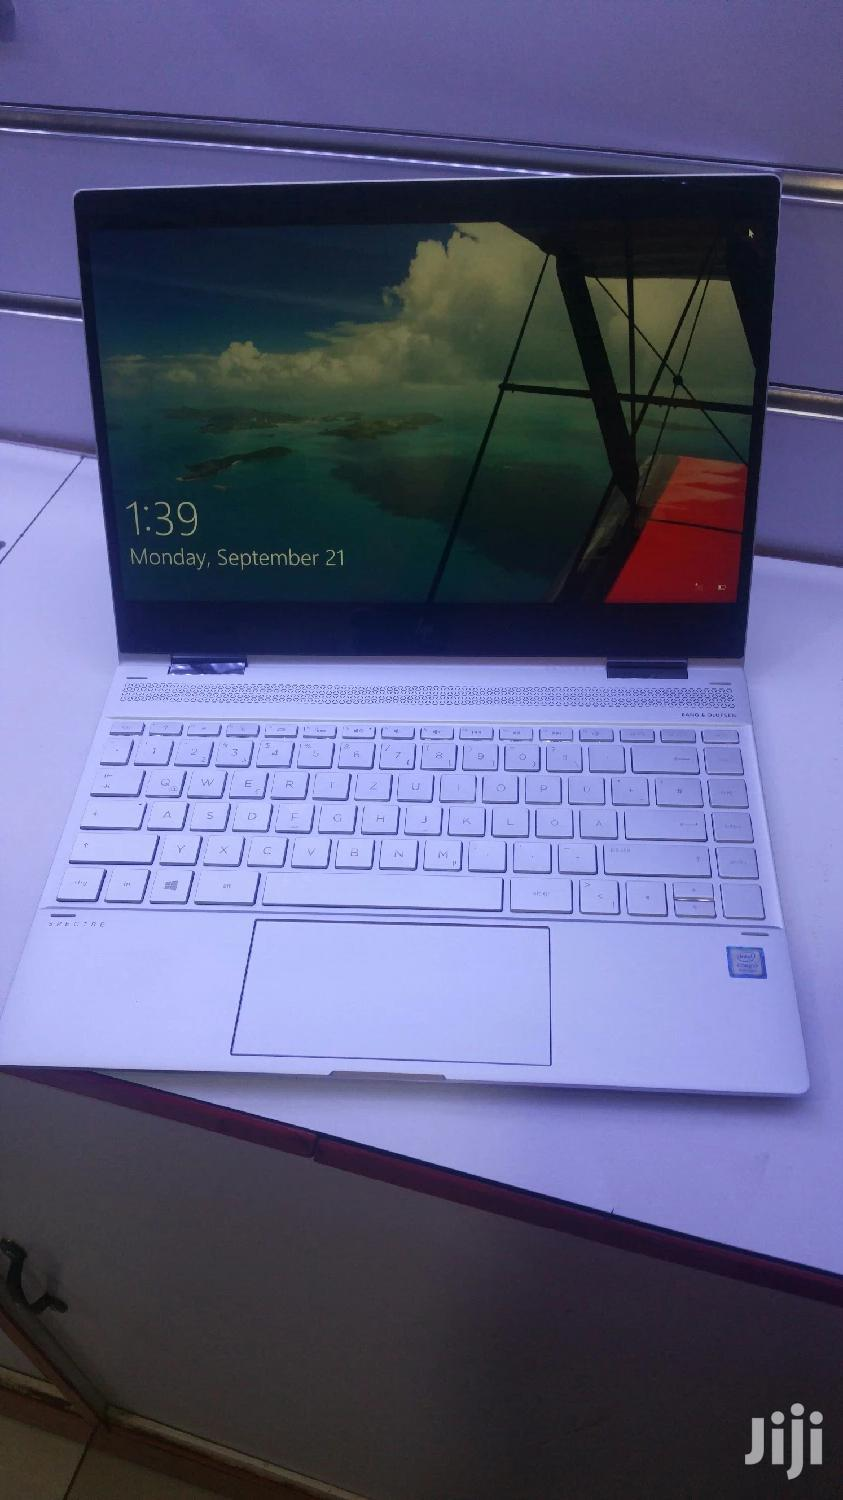 New Laptop HP Spectre X360 13 16GB Intel Core I7 SSD 512GB | Laptops & Computers for sale in Kampala, Central Region, Uganda